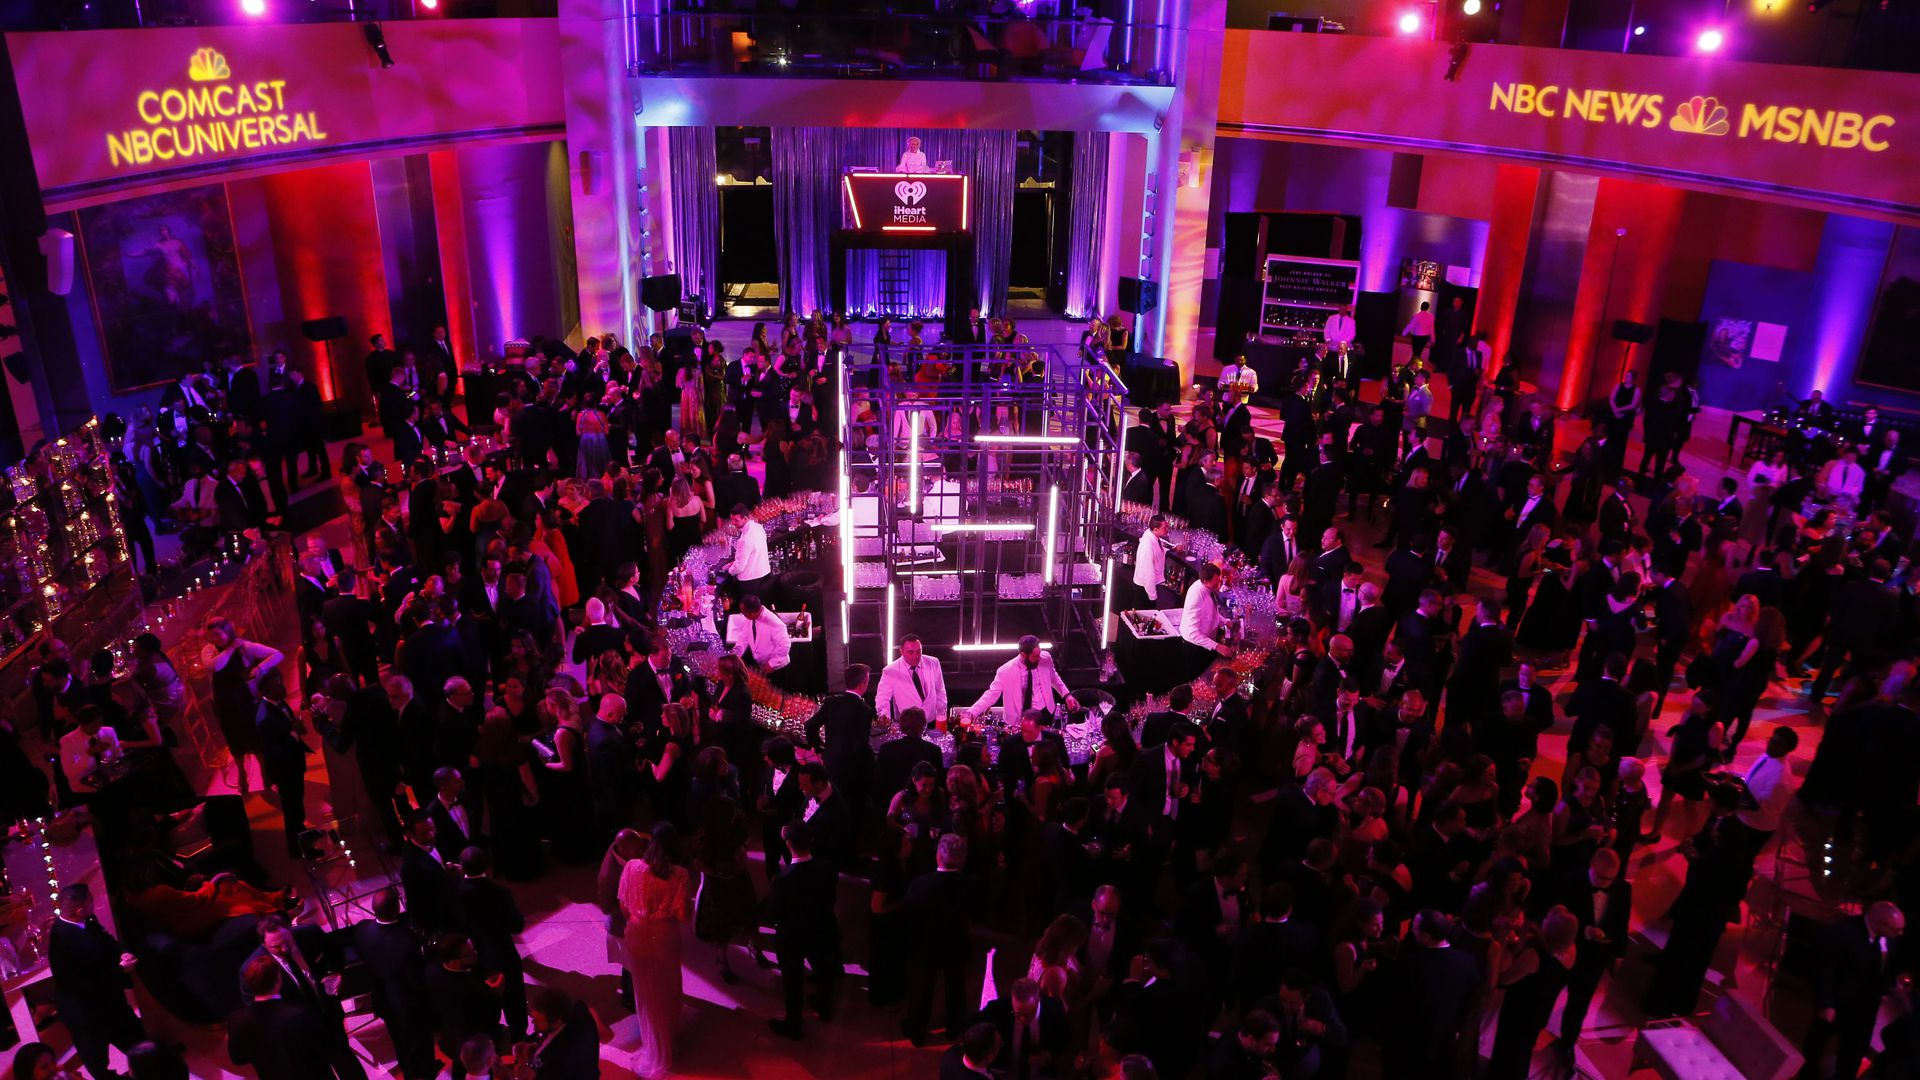 """The After Party,"" by NBC News, MSNBC and Comcast NBCUniversal, at the Italian Embassy (Photo: NBC News)"